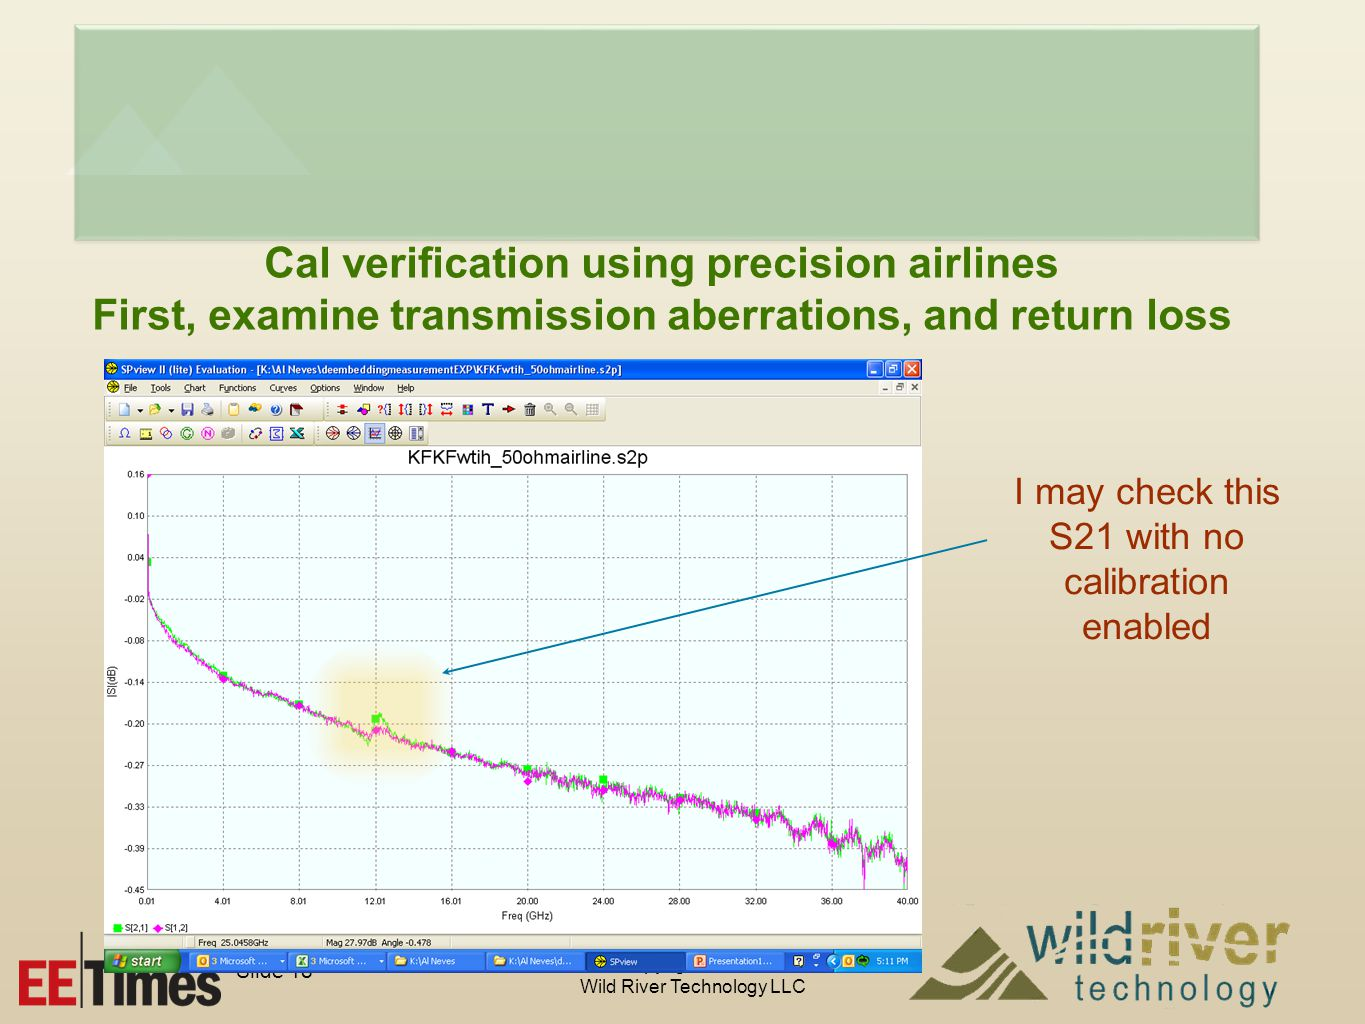 Copyright © 2014 Wild River Technology LLC Slide 18 Cal verification using precision airlines First, examine transmission aberrations, and return loss I may check this S21 with no calibration enabled